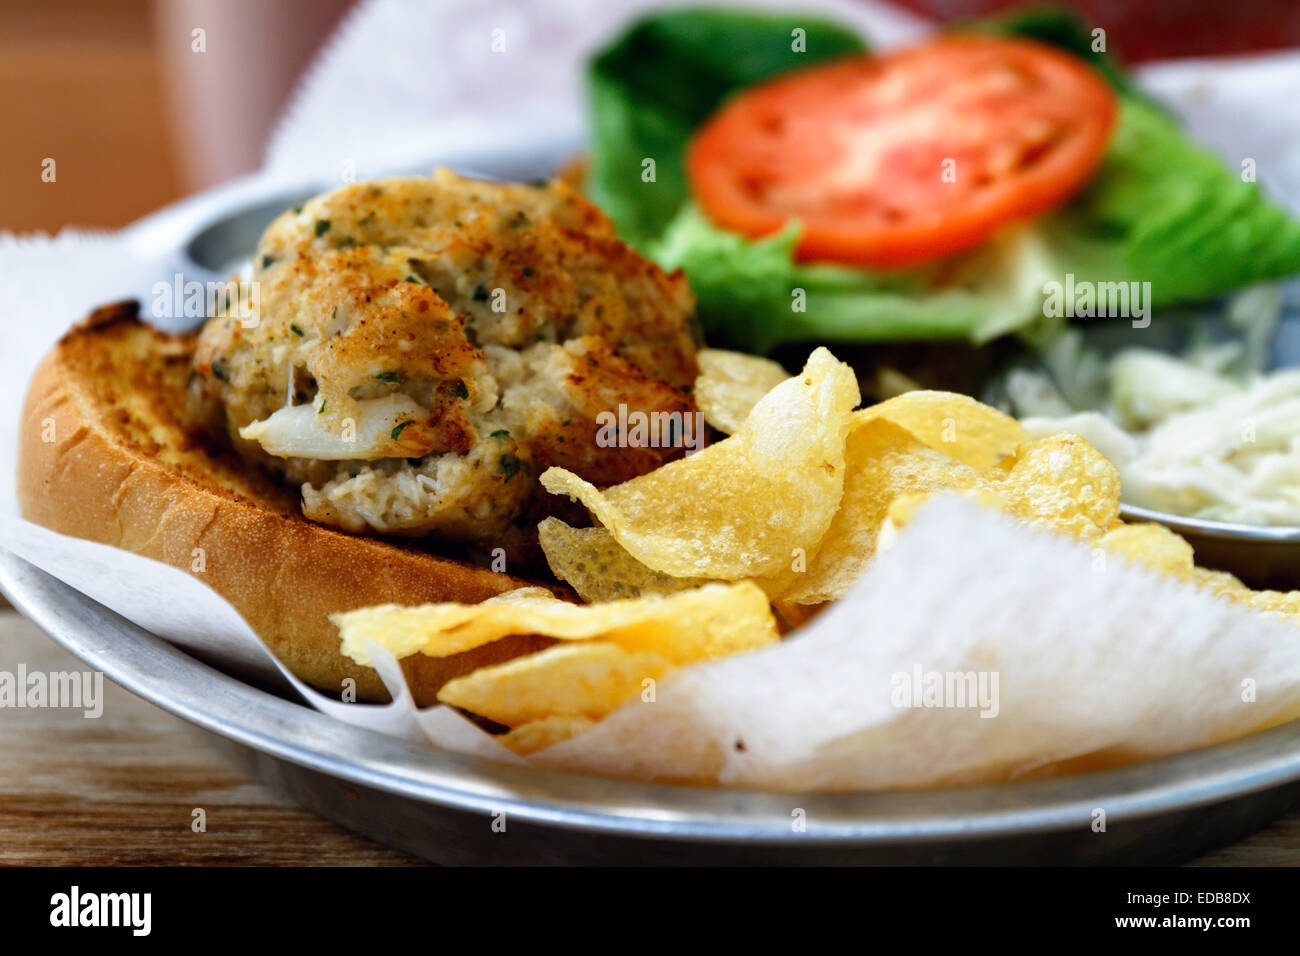 Close Up View of a Maryland Blue Crab Sandwich, Baltimore, Maryland - Stock Image